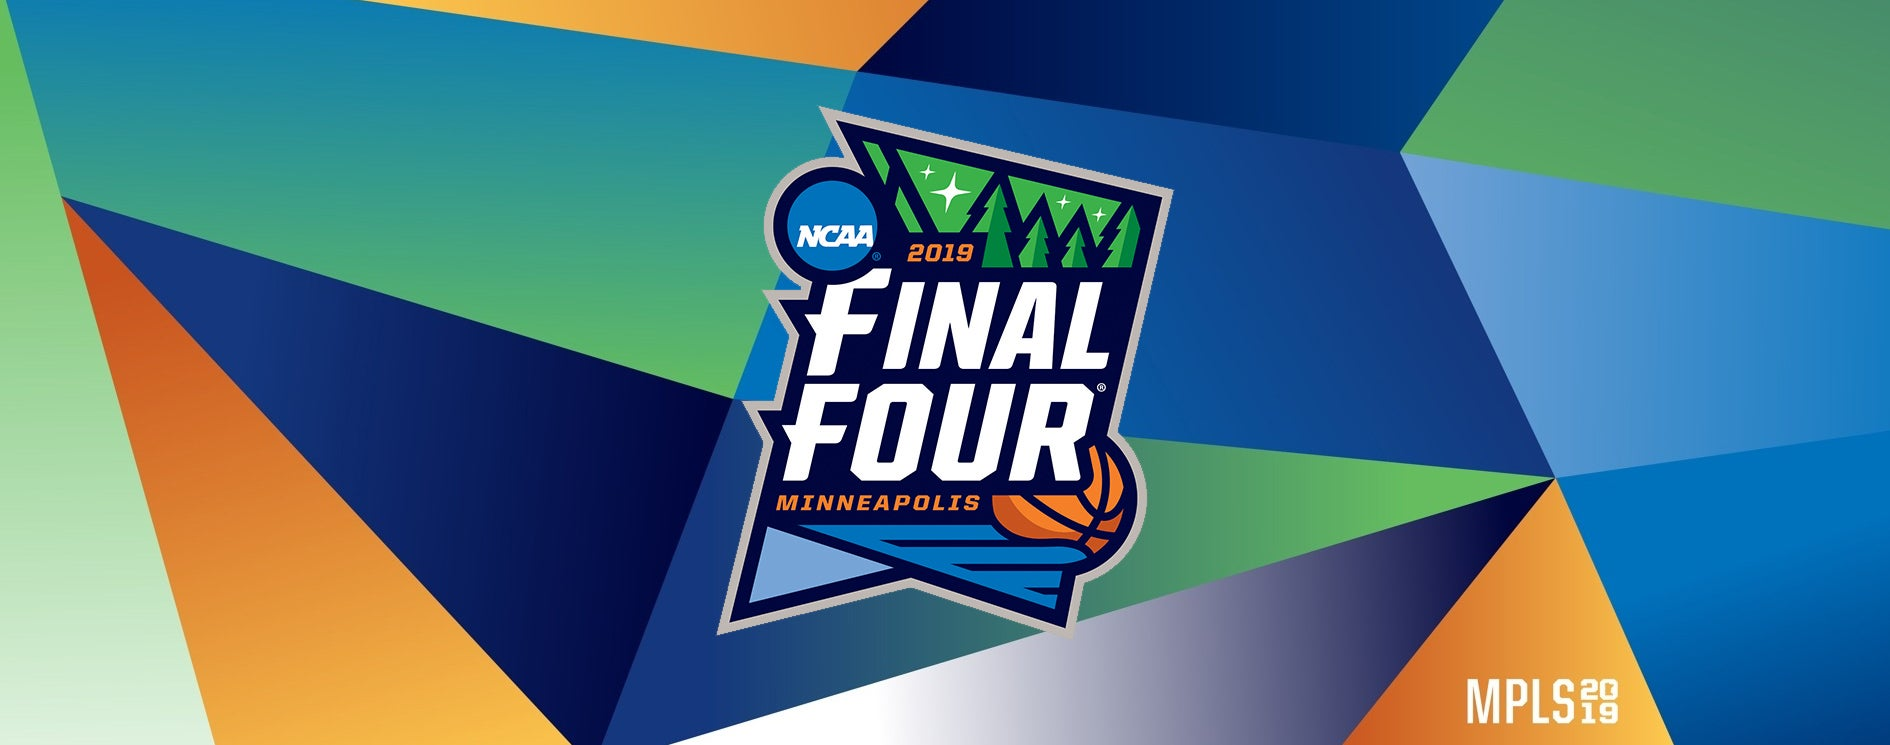 NCAA Men's Final Four®